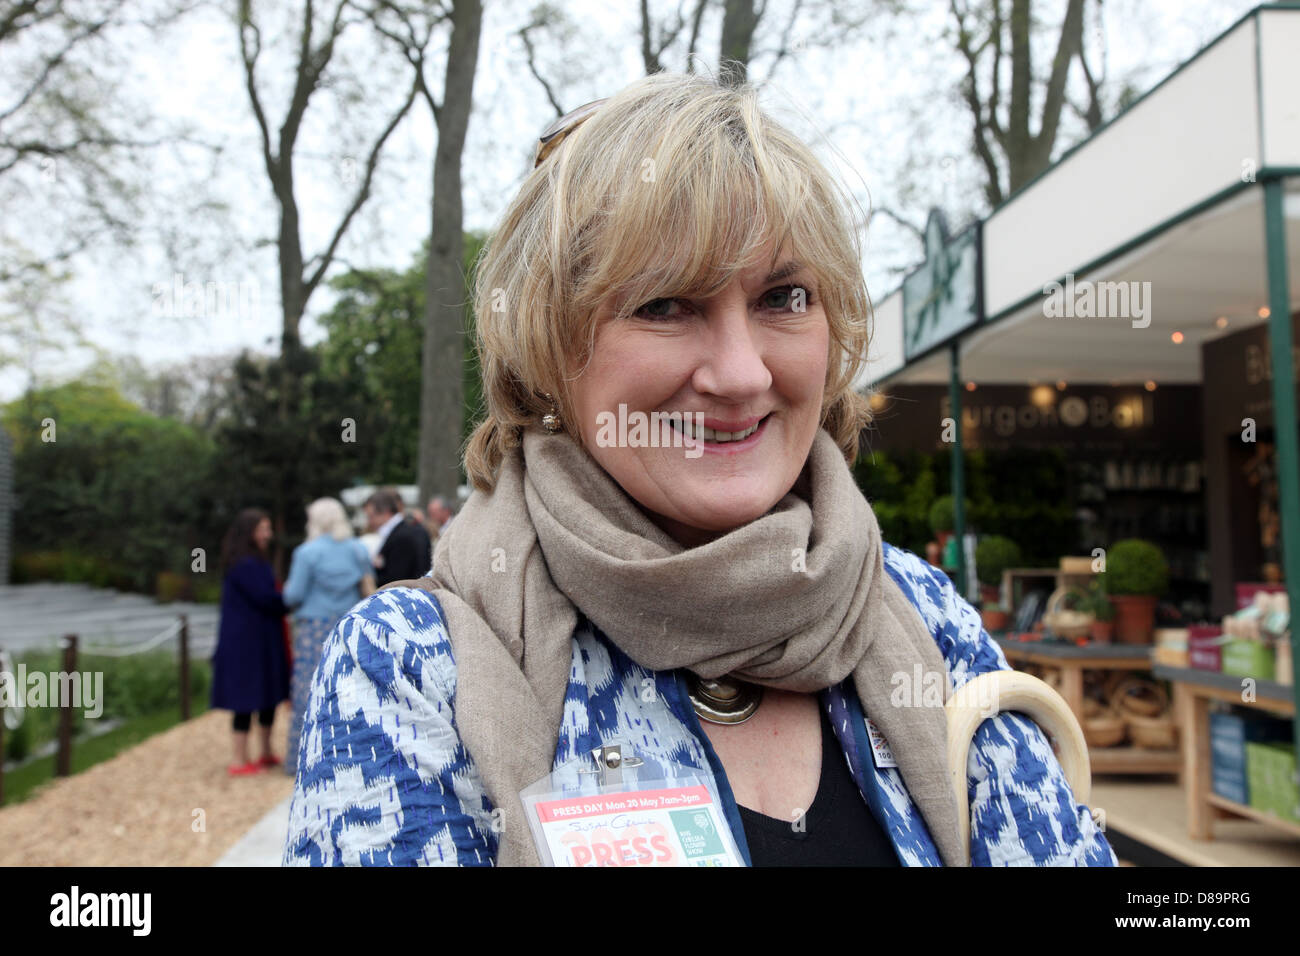 Susan Crewe, Editor of House & Garden at the RHS Chelsea Flower Show 2013 - Stock Image